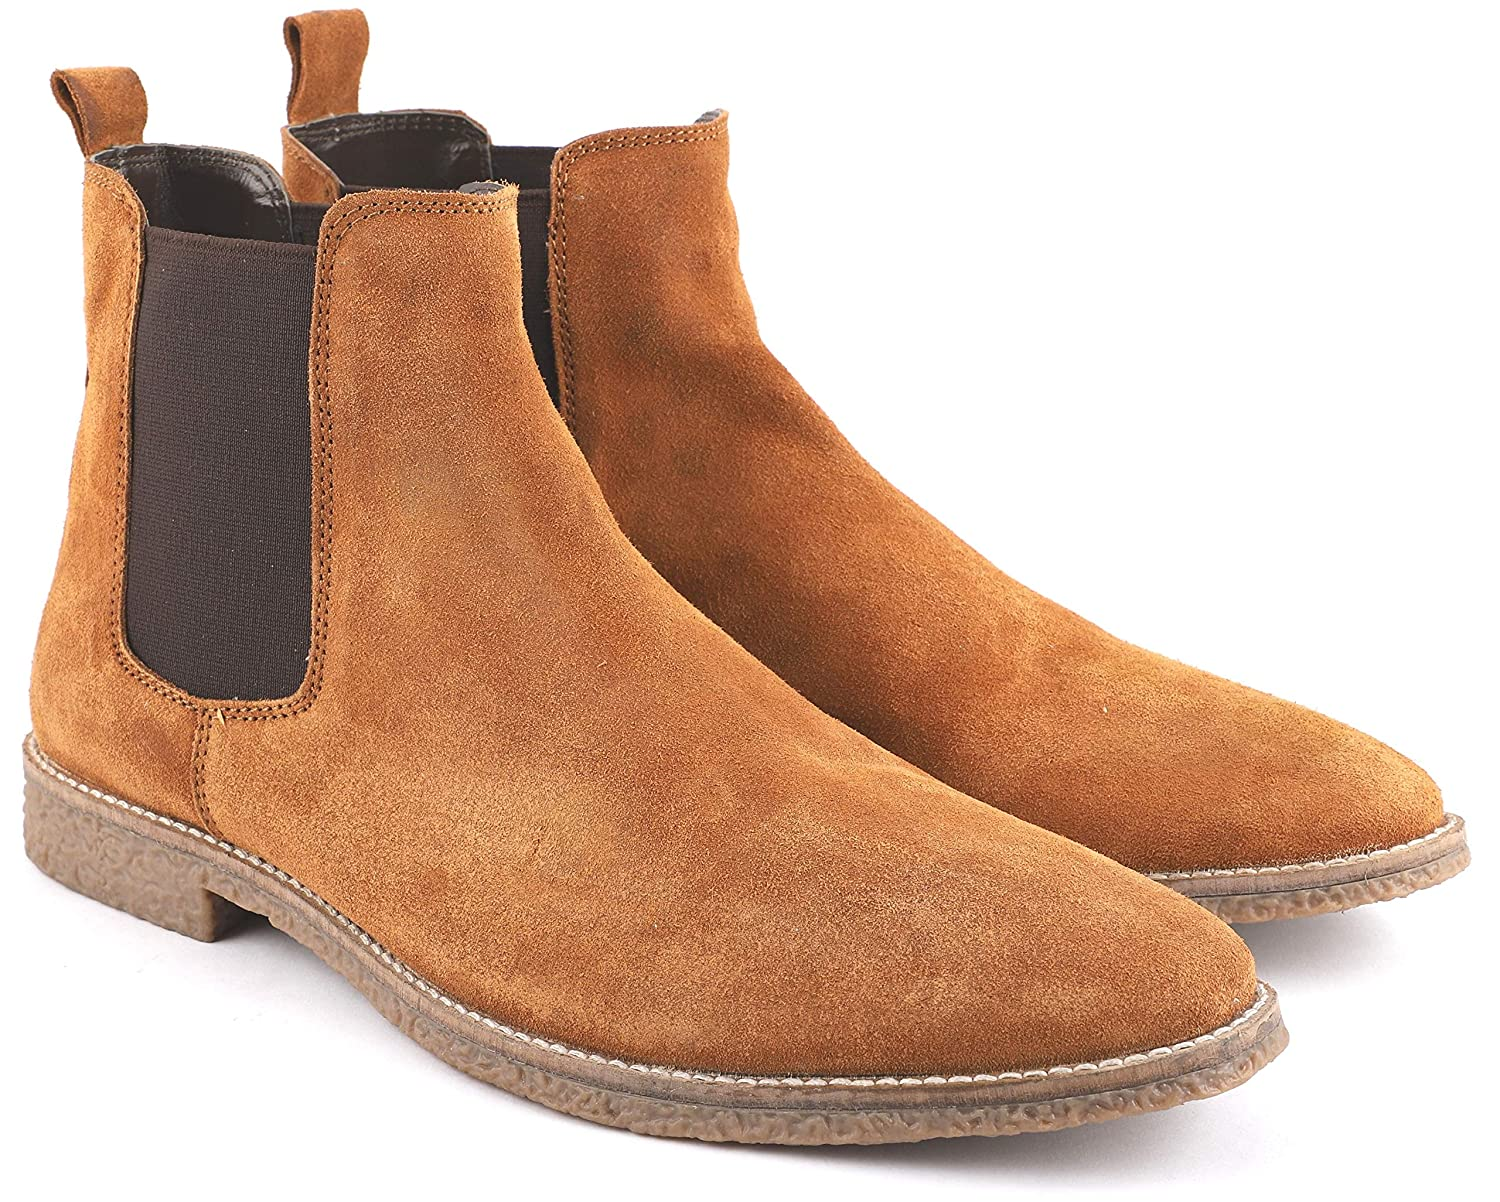 Freacksters Men S Suede Leather Chelsea Boots Buy Online At Low